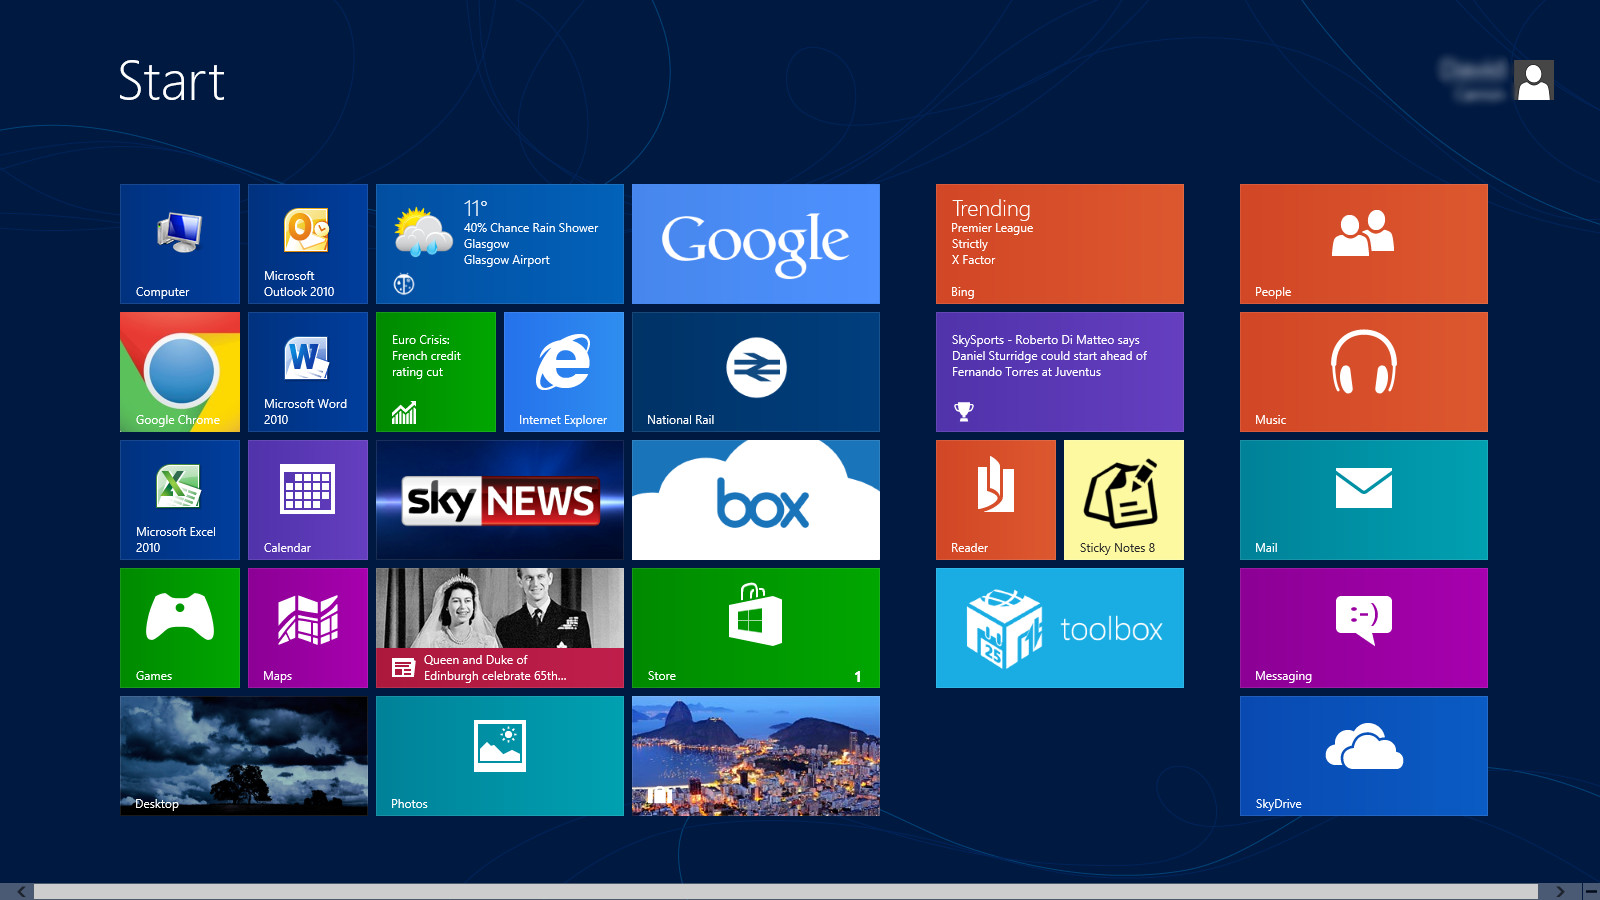 Windows 8 Plan B – Back to the Future